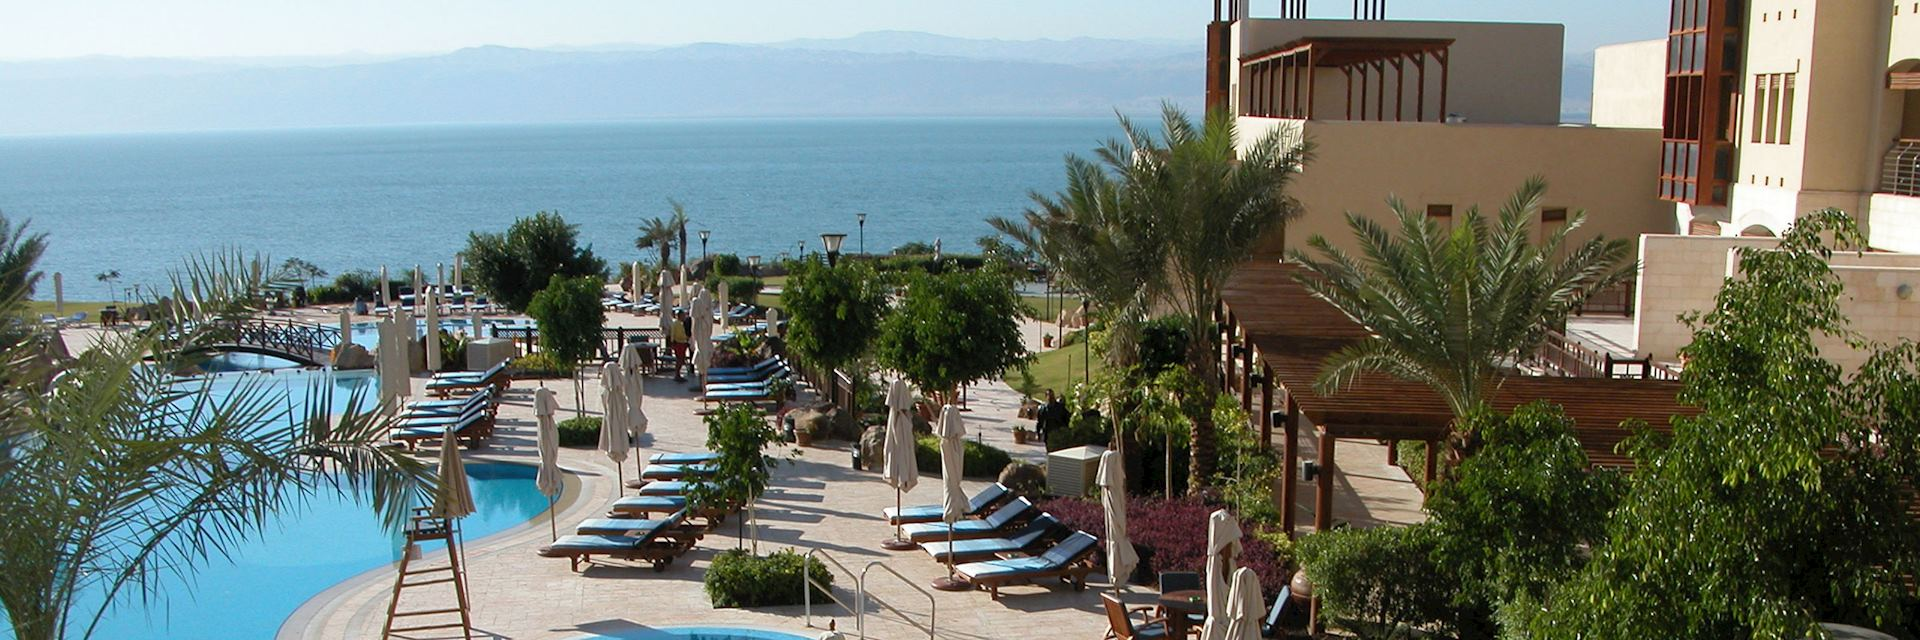 The Marriott Dead Sea Resort, Jordan